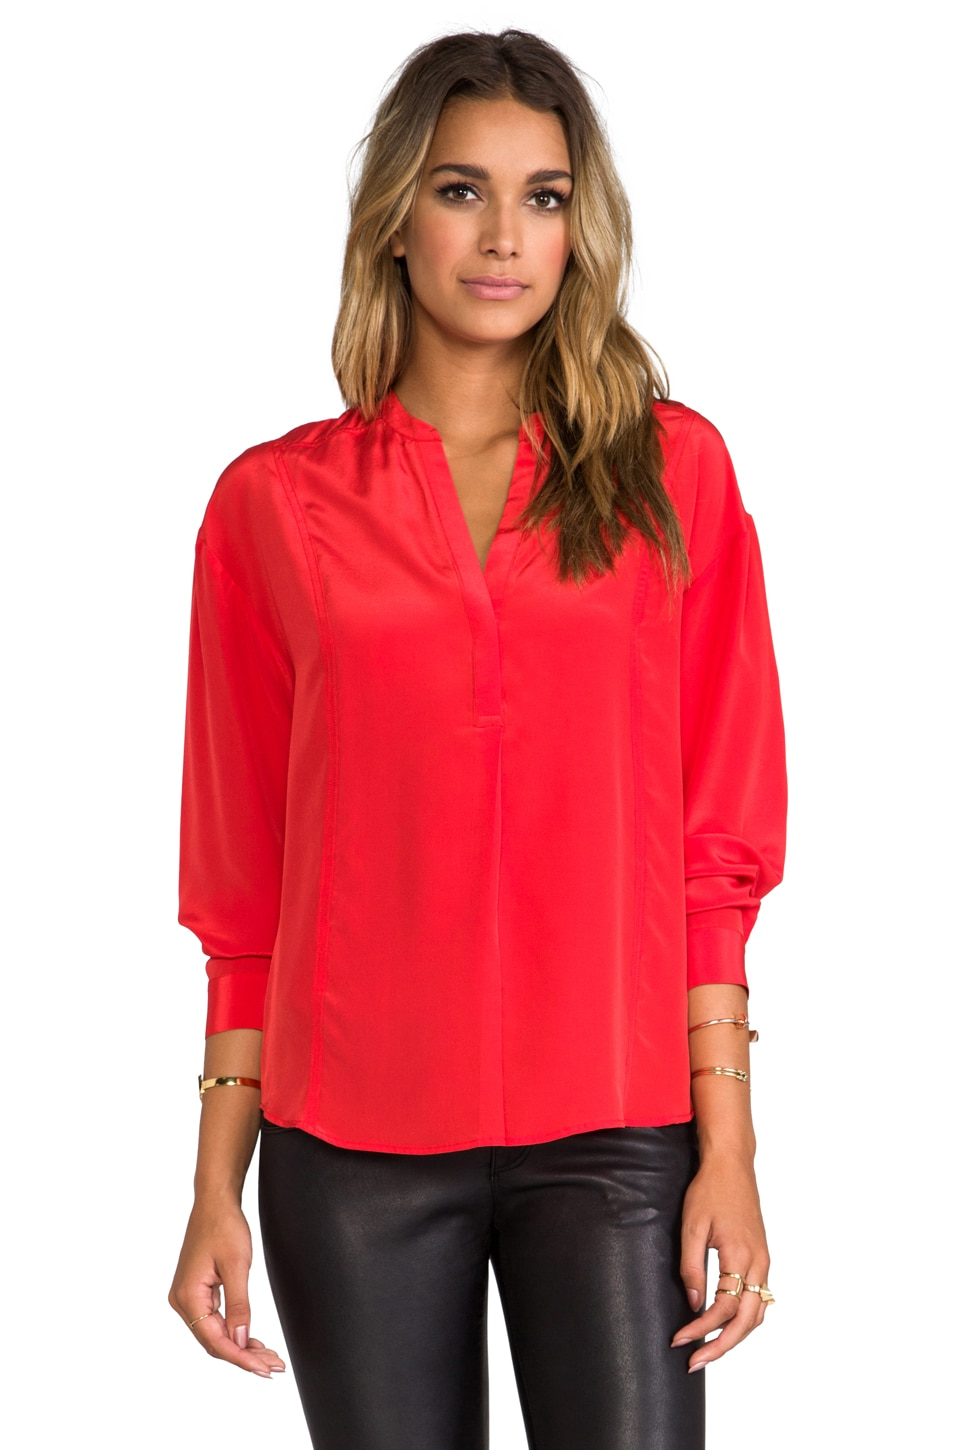 Elizabeth and James Pamela Blouse in Empire Red